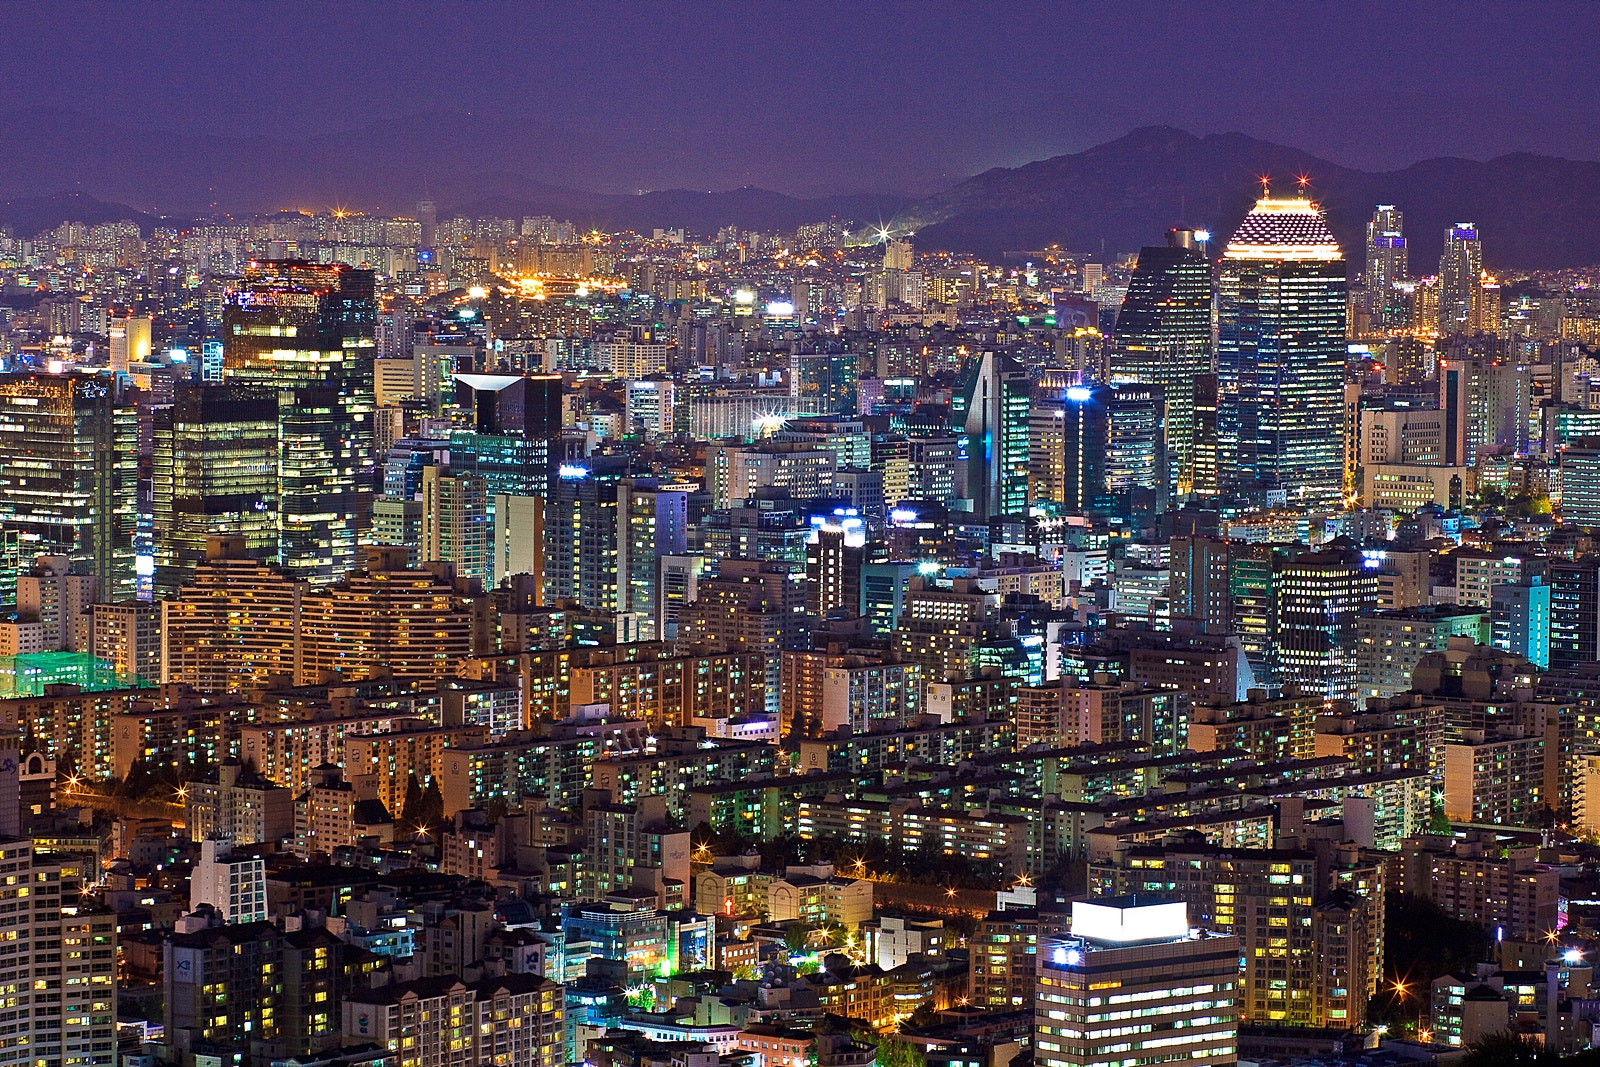 Photograph City at Night by Sungjin Kim on 500px